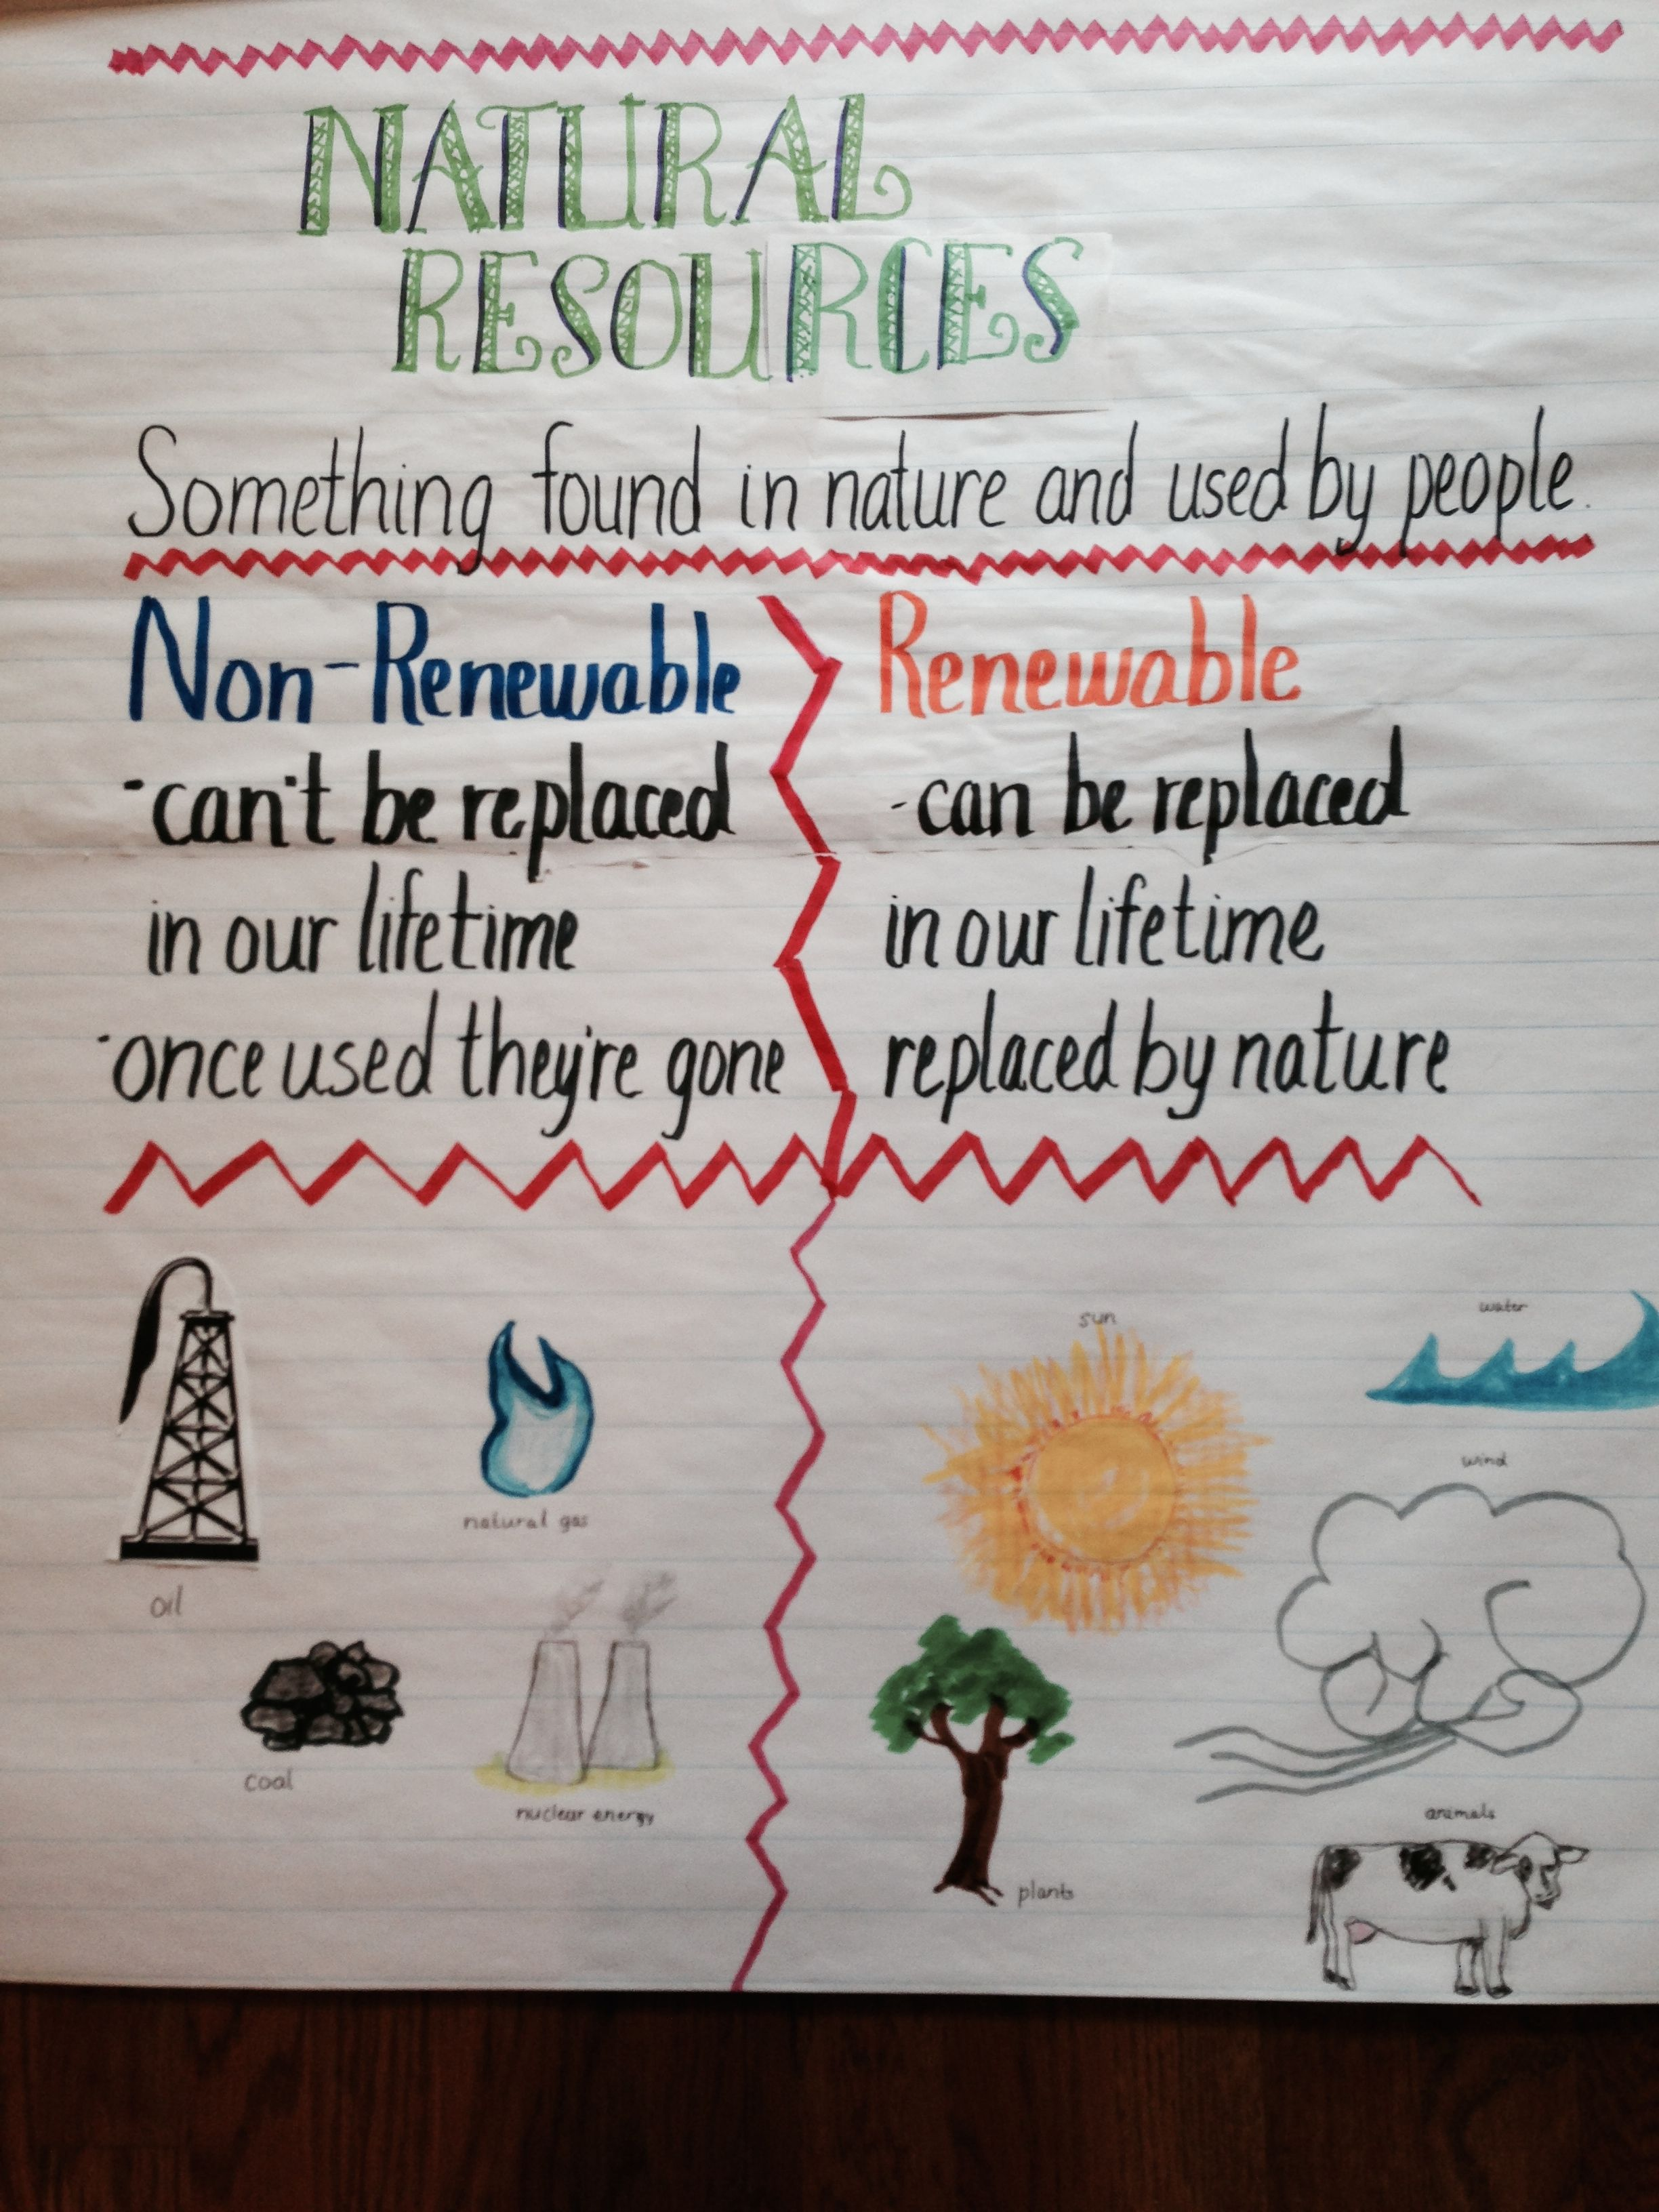 hight resolution of 36 Natural resources ideas   nonrenewable resources